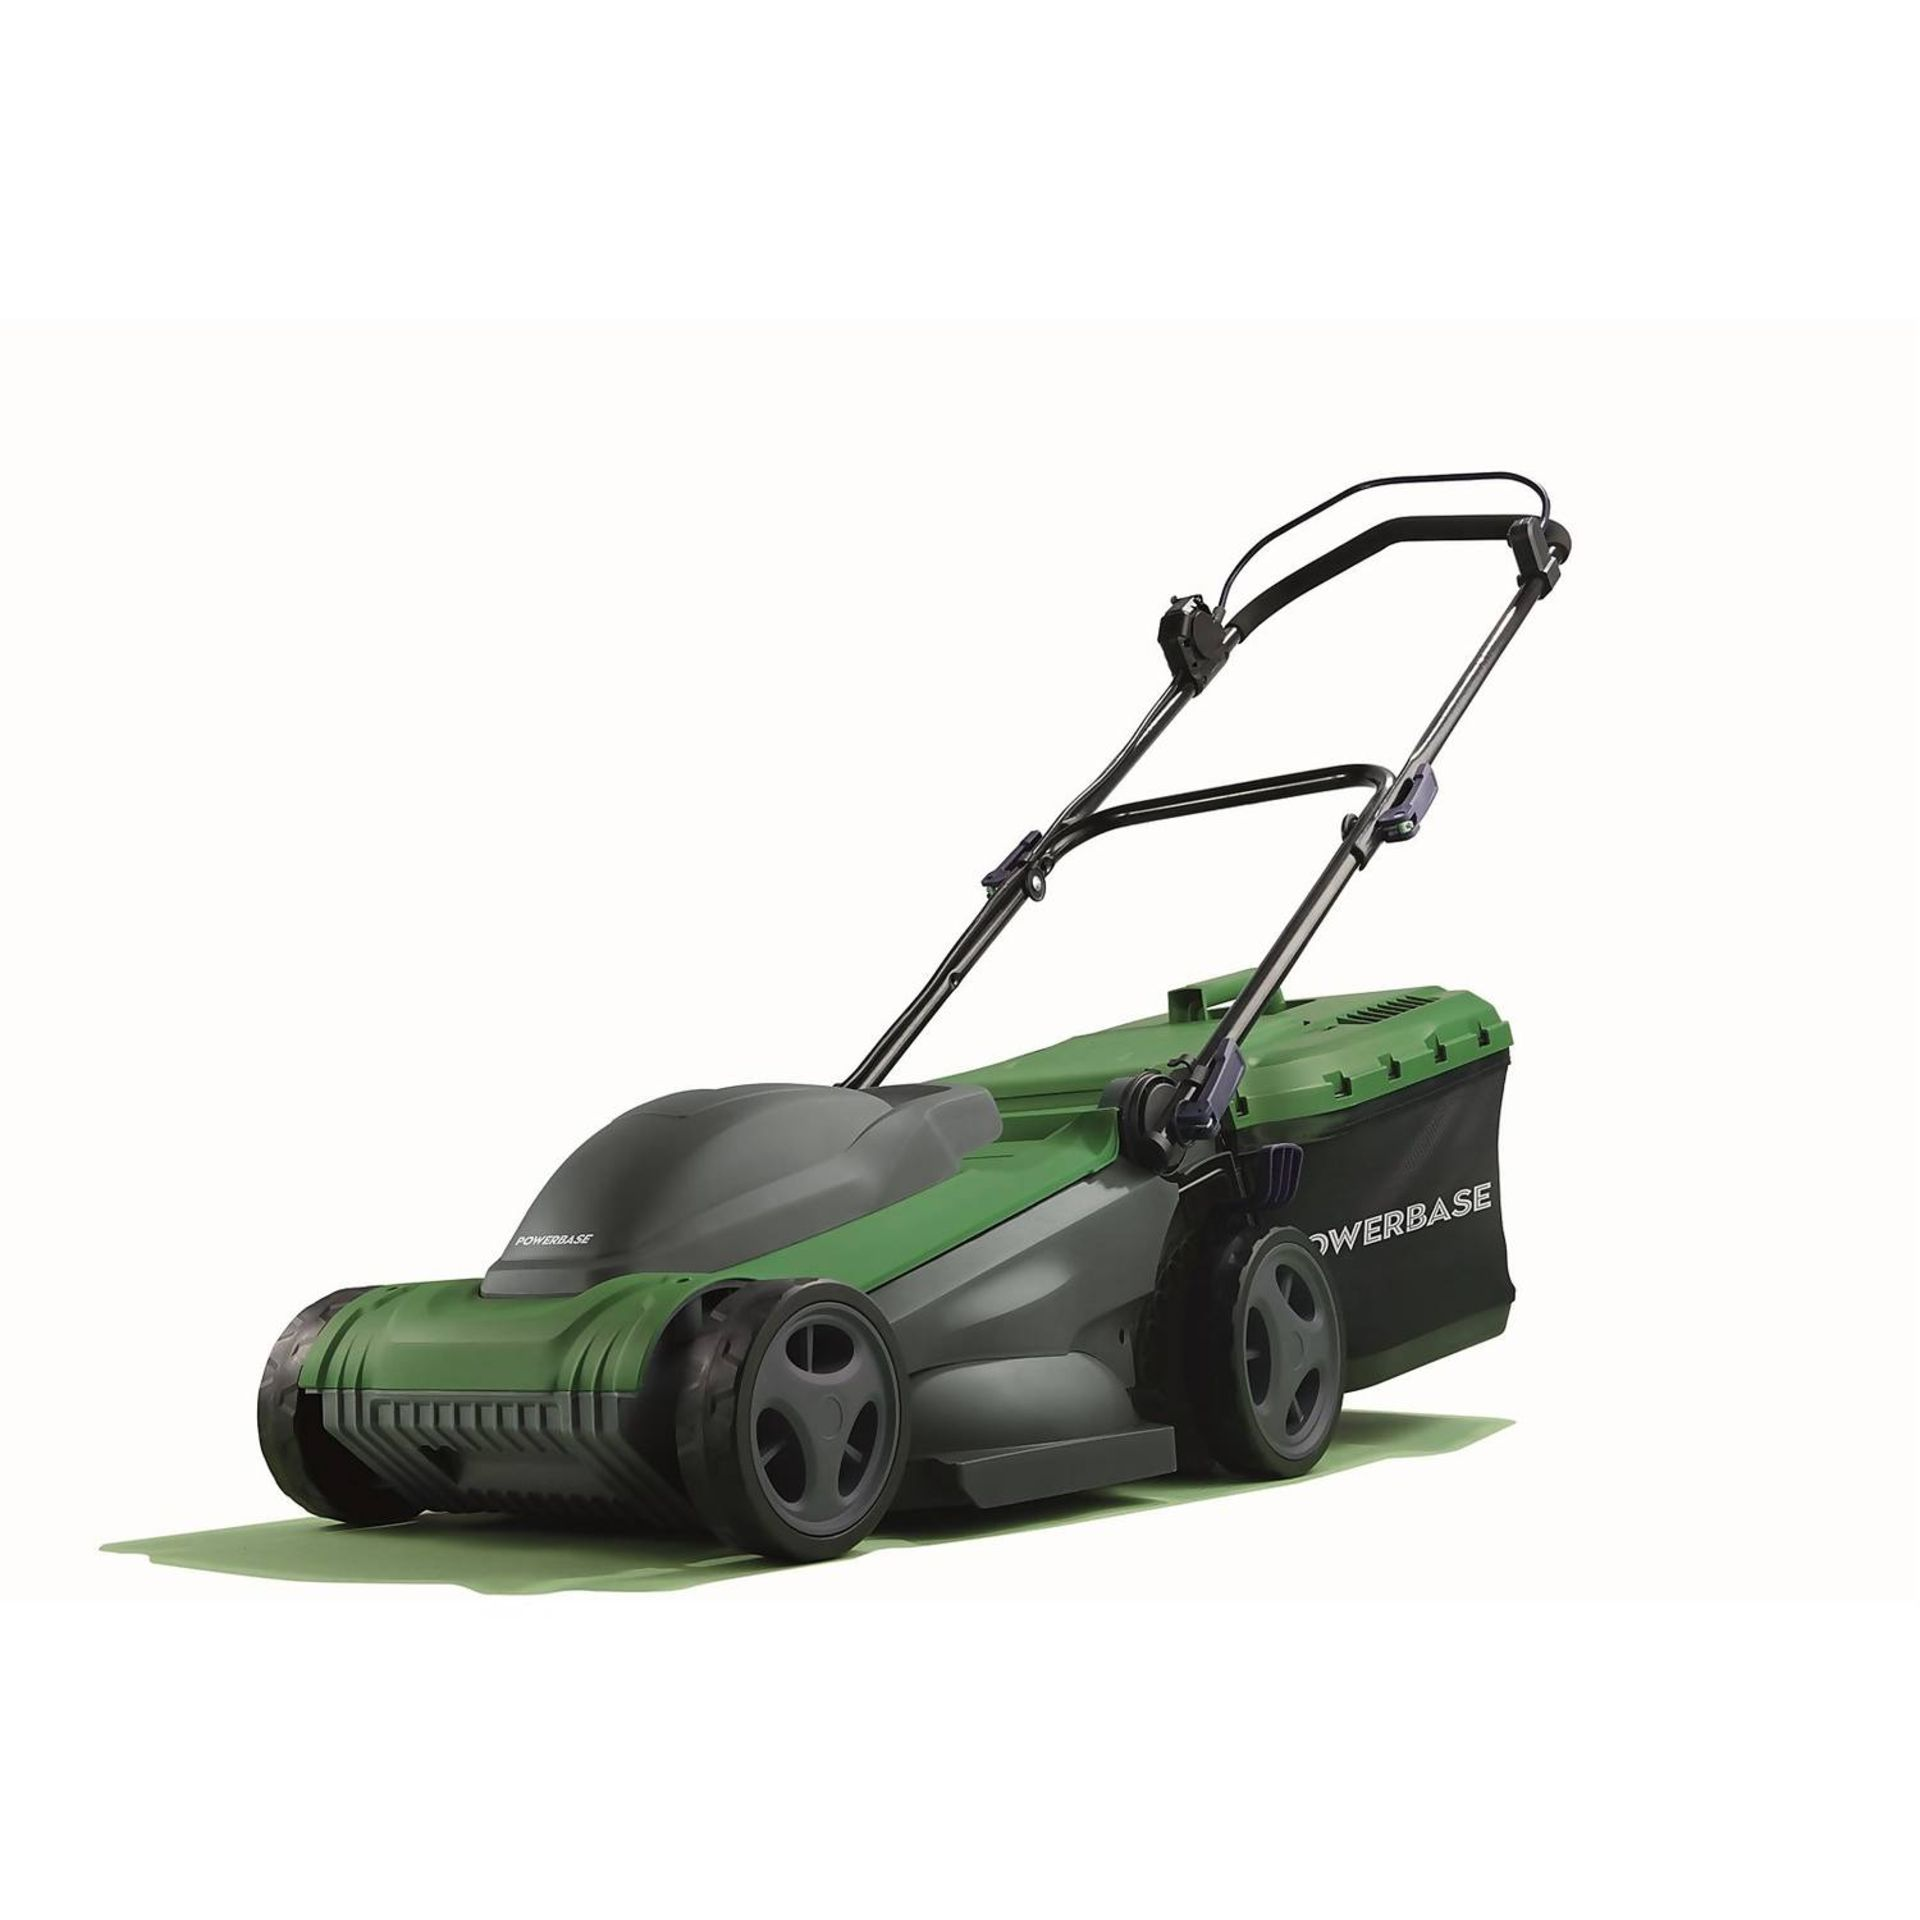 (P10) 2x Items. 1x Flymo EasiGlide 360V Electric Hover Collect Lawnmower RRP £139. 1x Powerbase 37 - Image 2 of 3